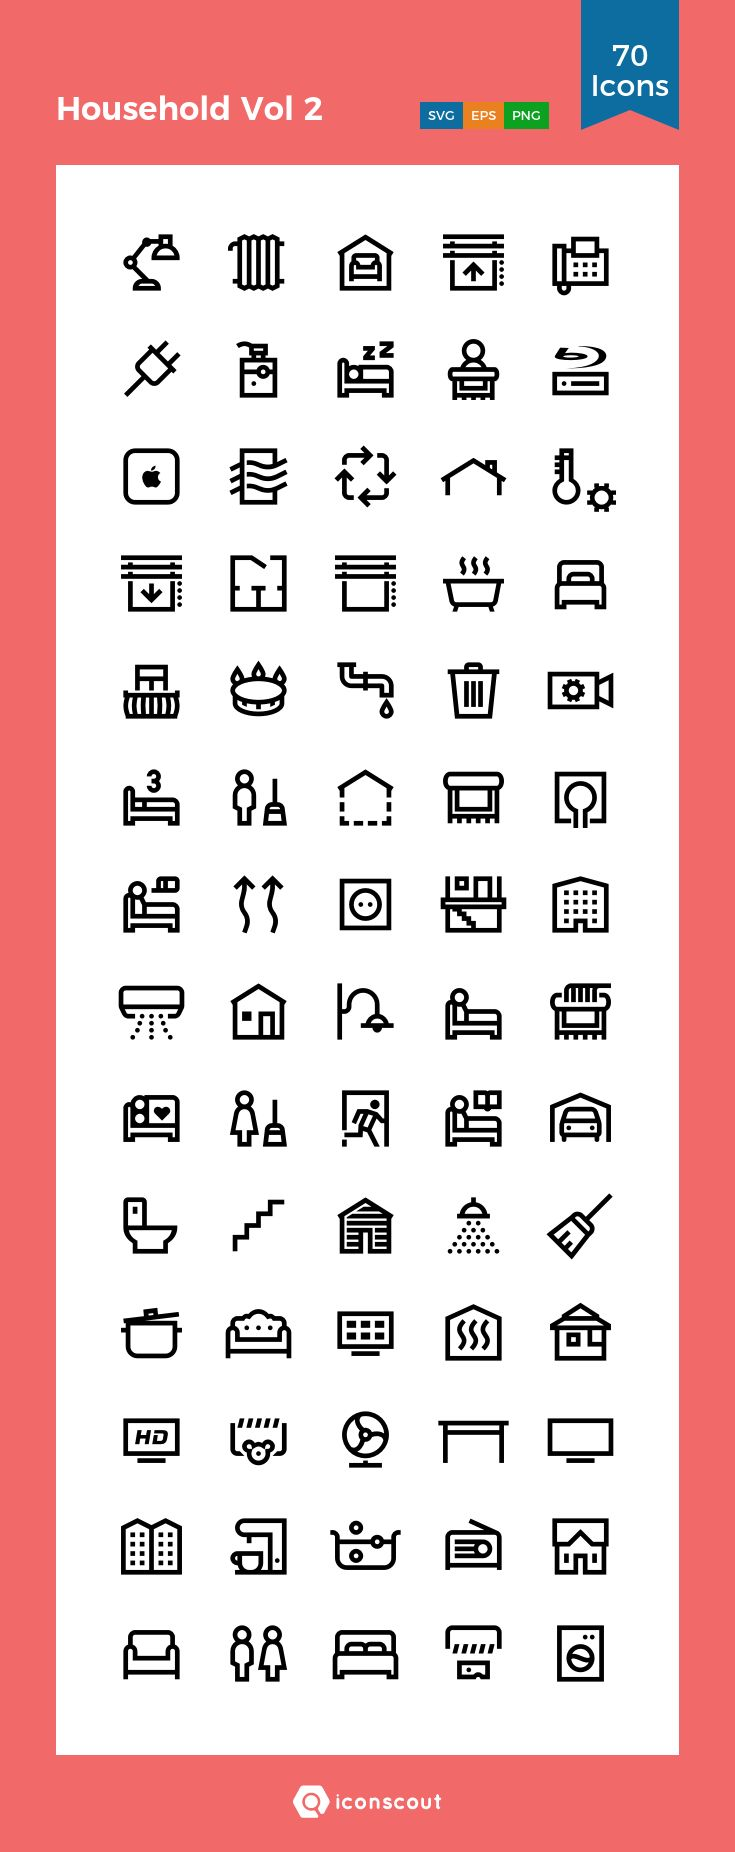 Household Vol 2  Icon Pack - 70 Line Icons